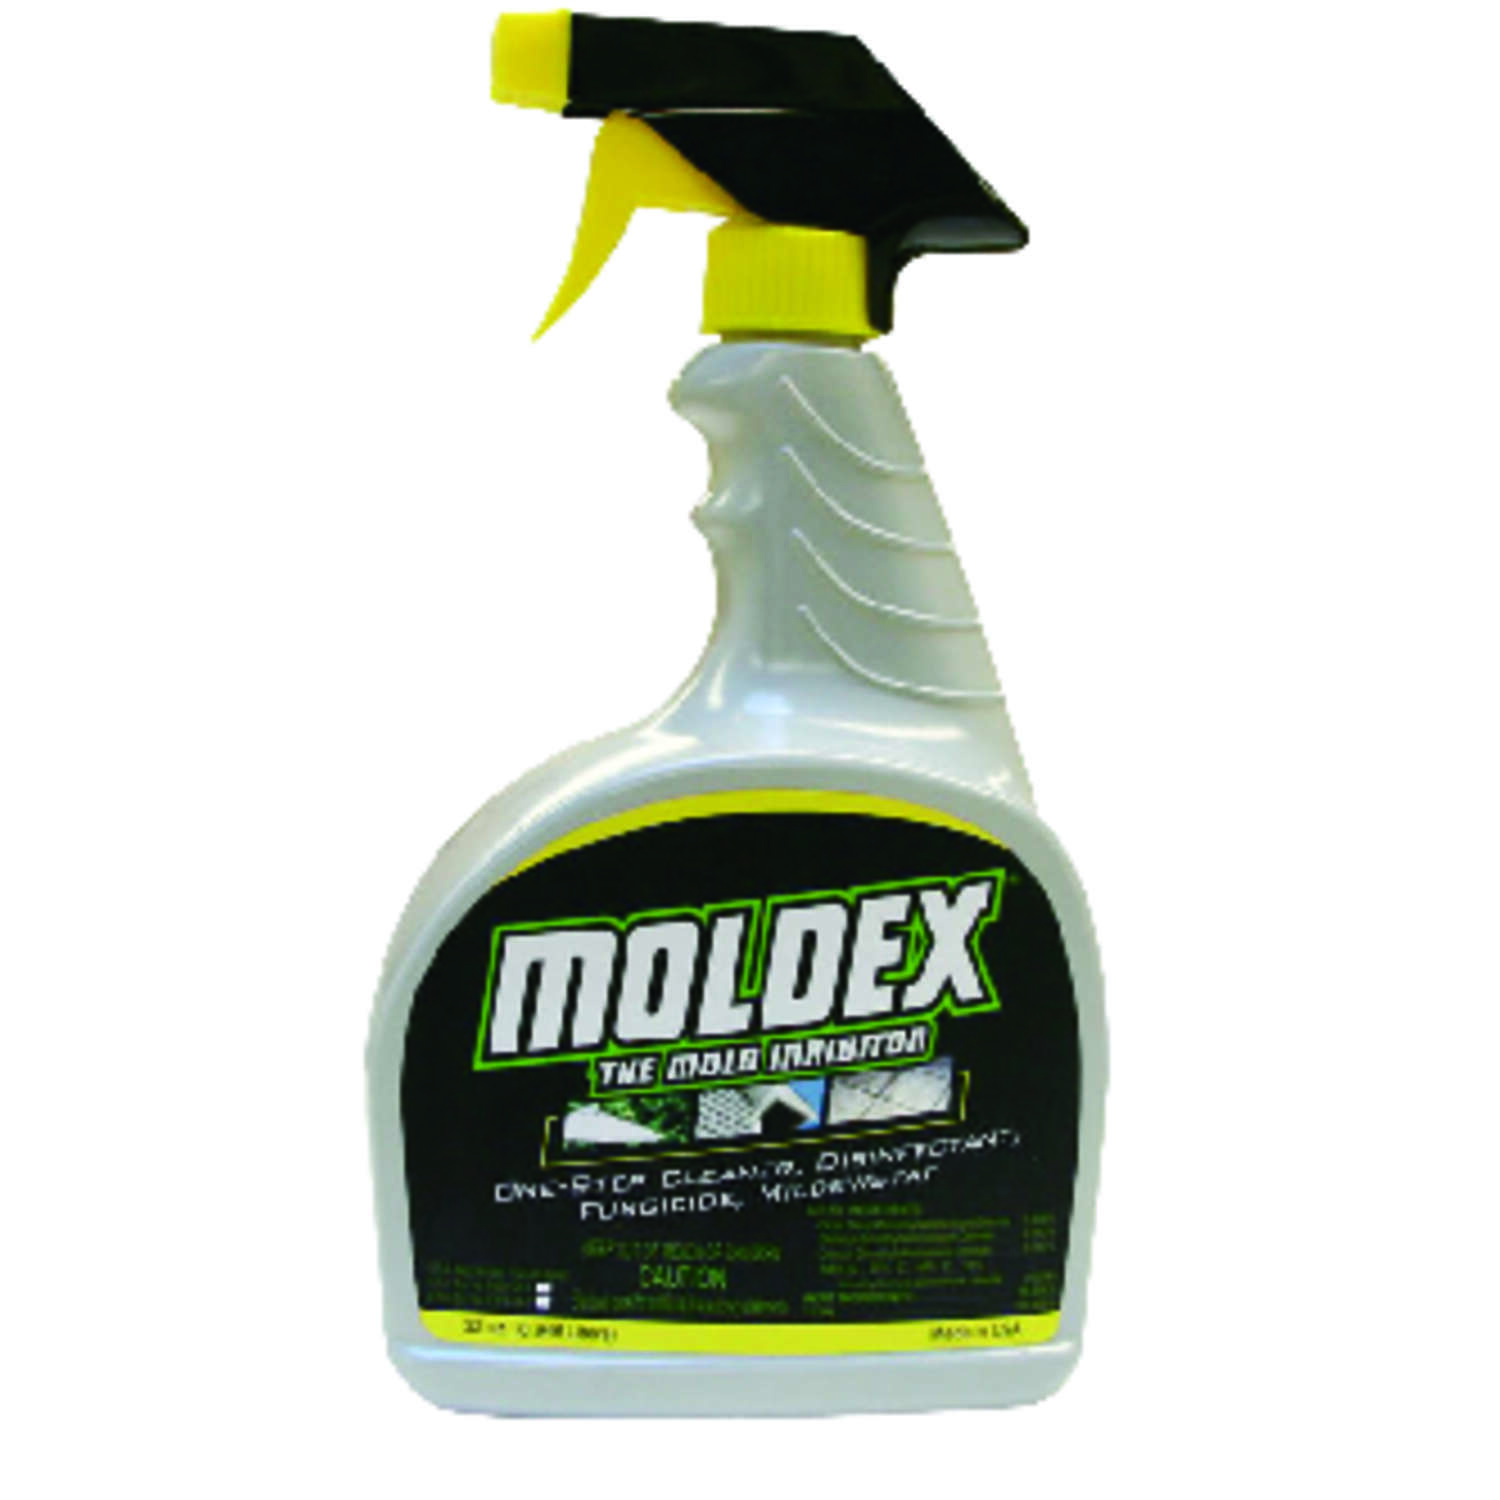 Moldex  Mold Killer  No Scent Disinfectant Spray  32 oz.